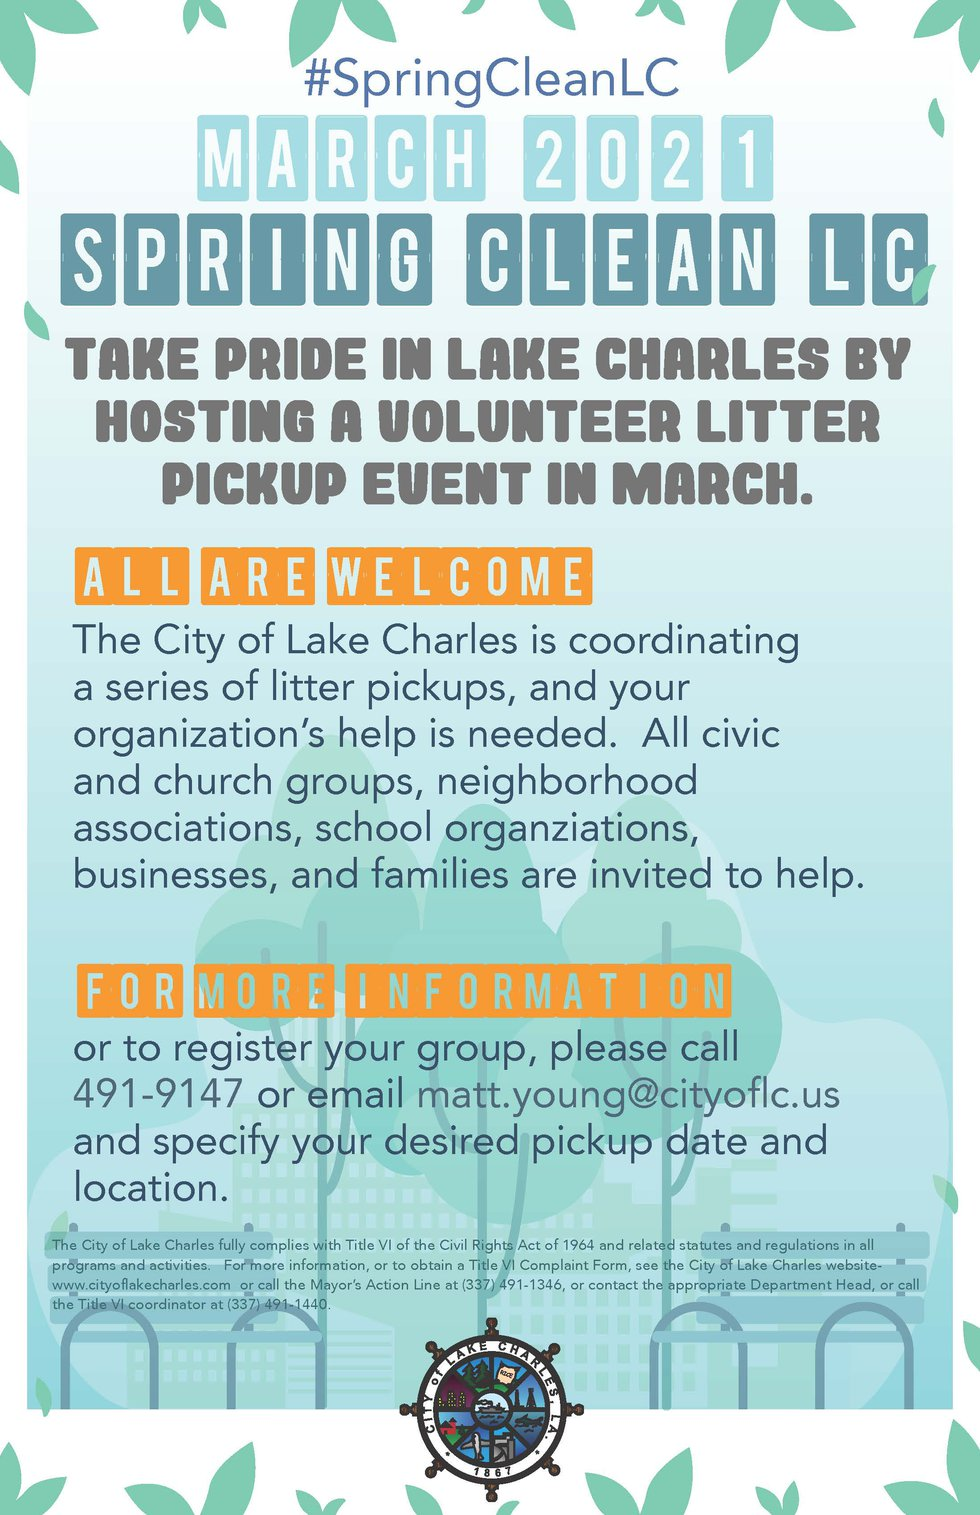 The City of Lake Charles is sponsoring an event in March in the hopes of picking up much of the...